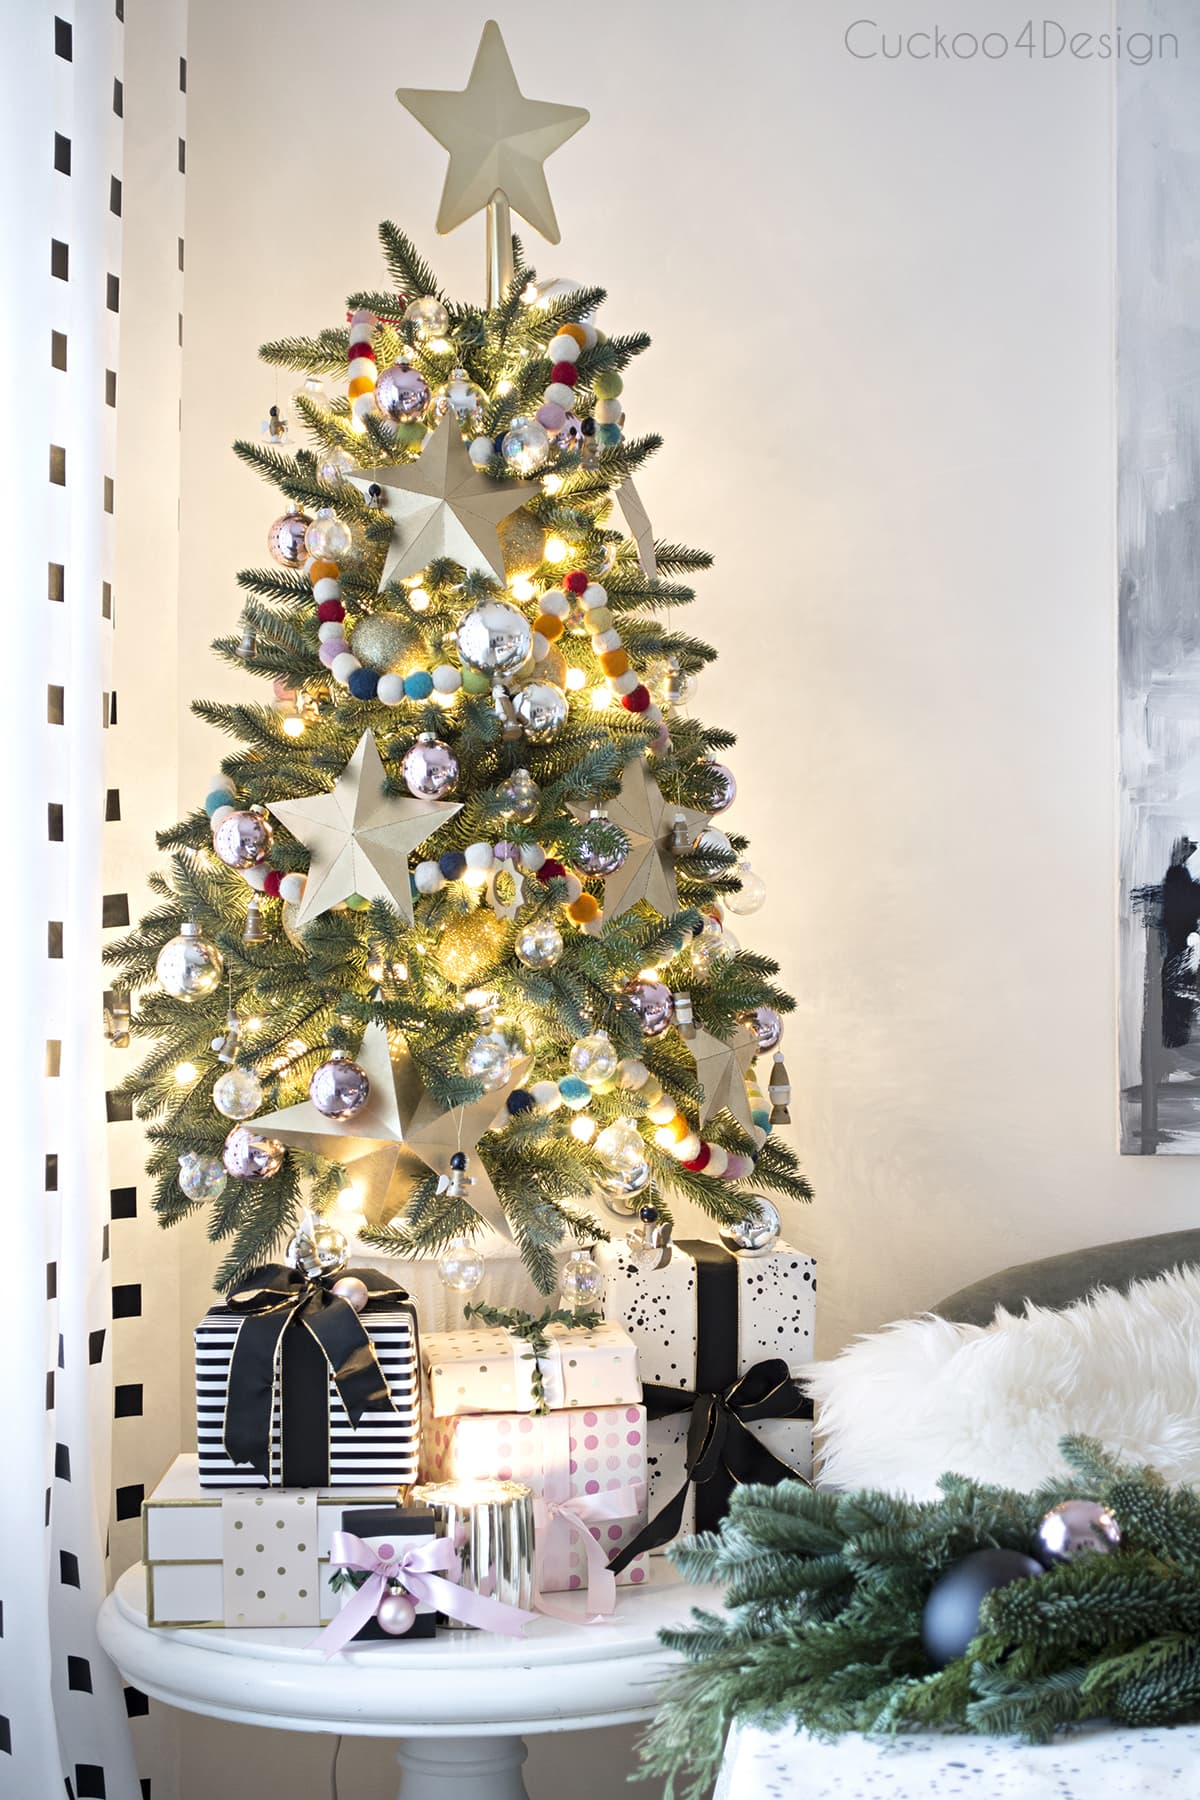 Christmas tree decorating ideas better homes and gardens for Better homes and gardens christmas decorating ideas